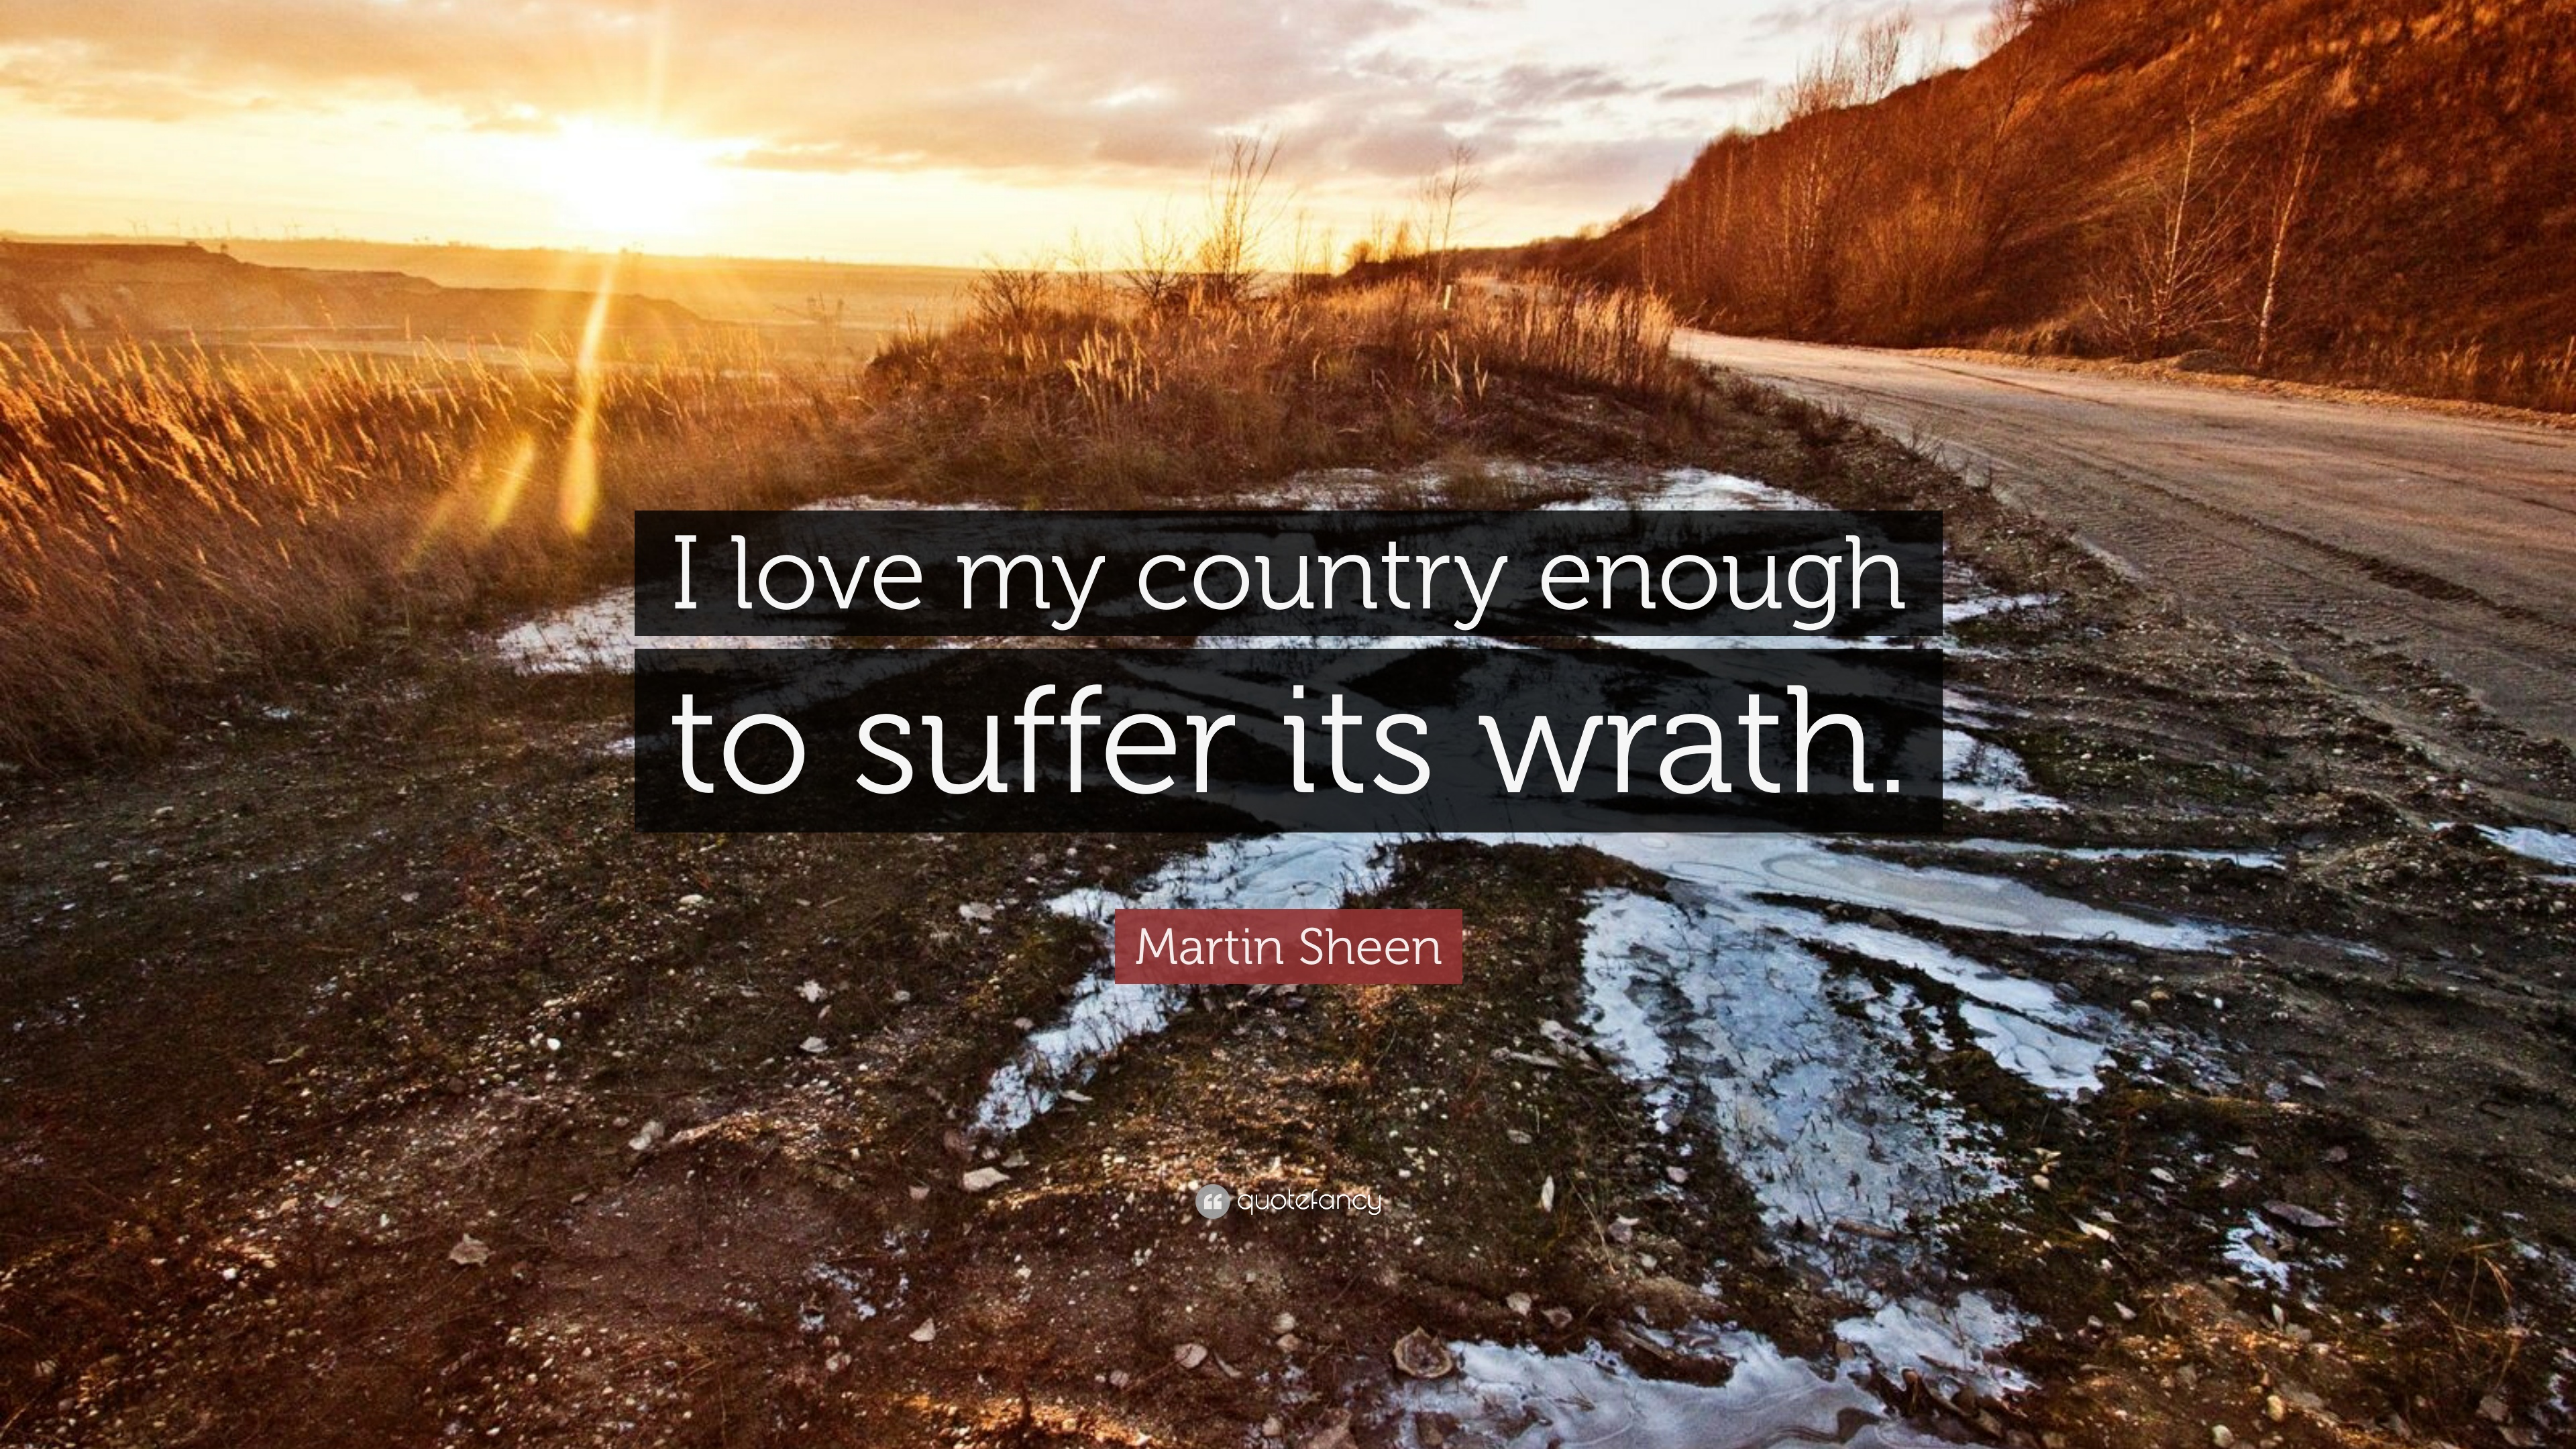 Martin Sheen Quote I Love My Country Enough To Suffer Its Wrath